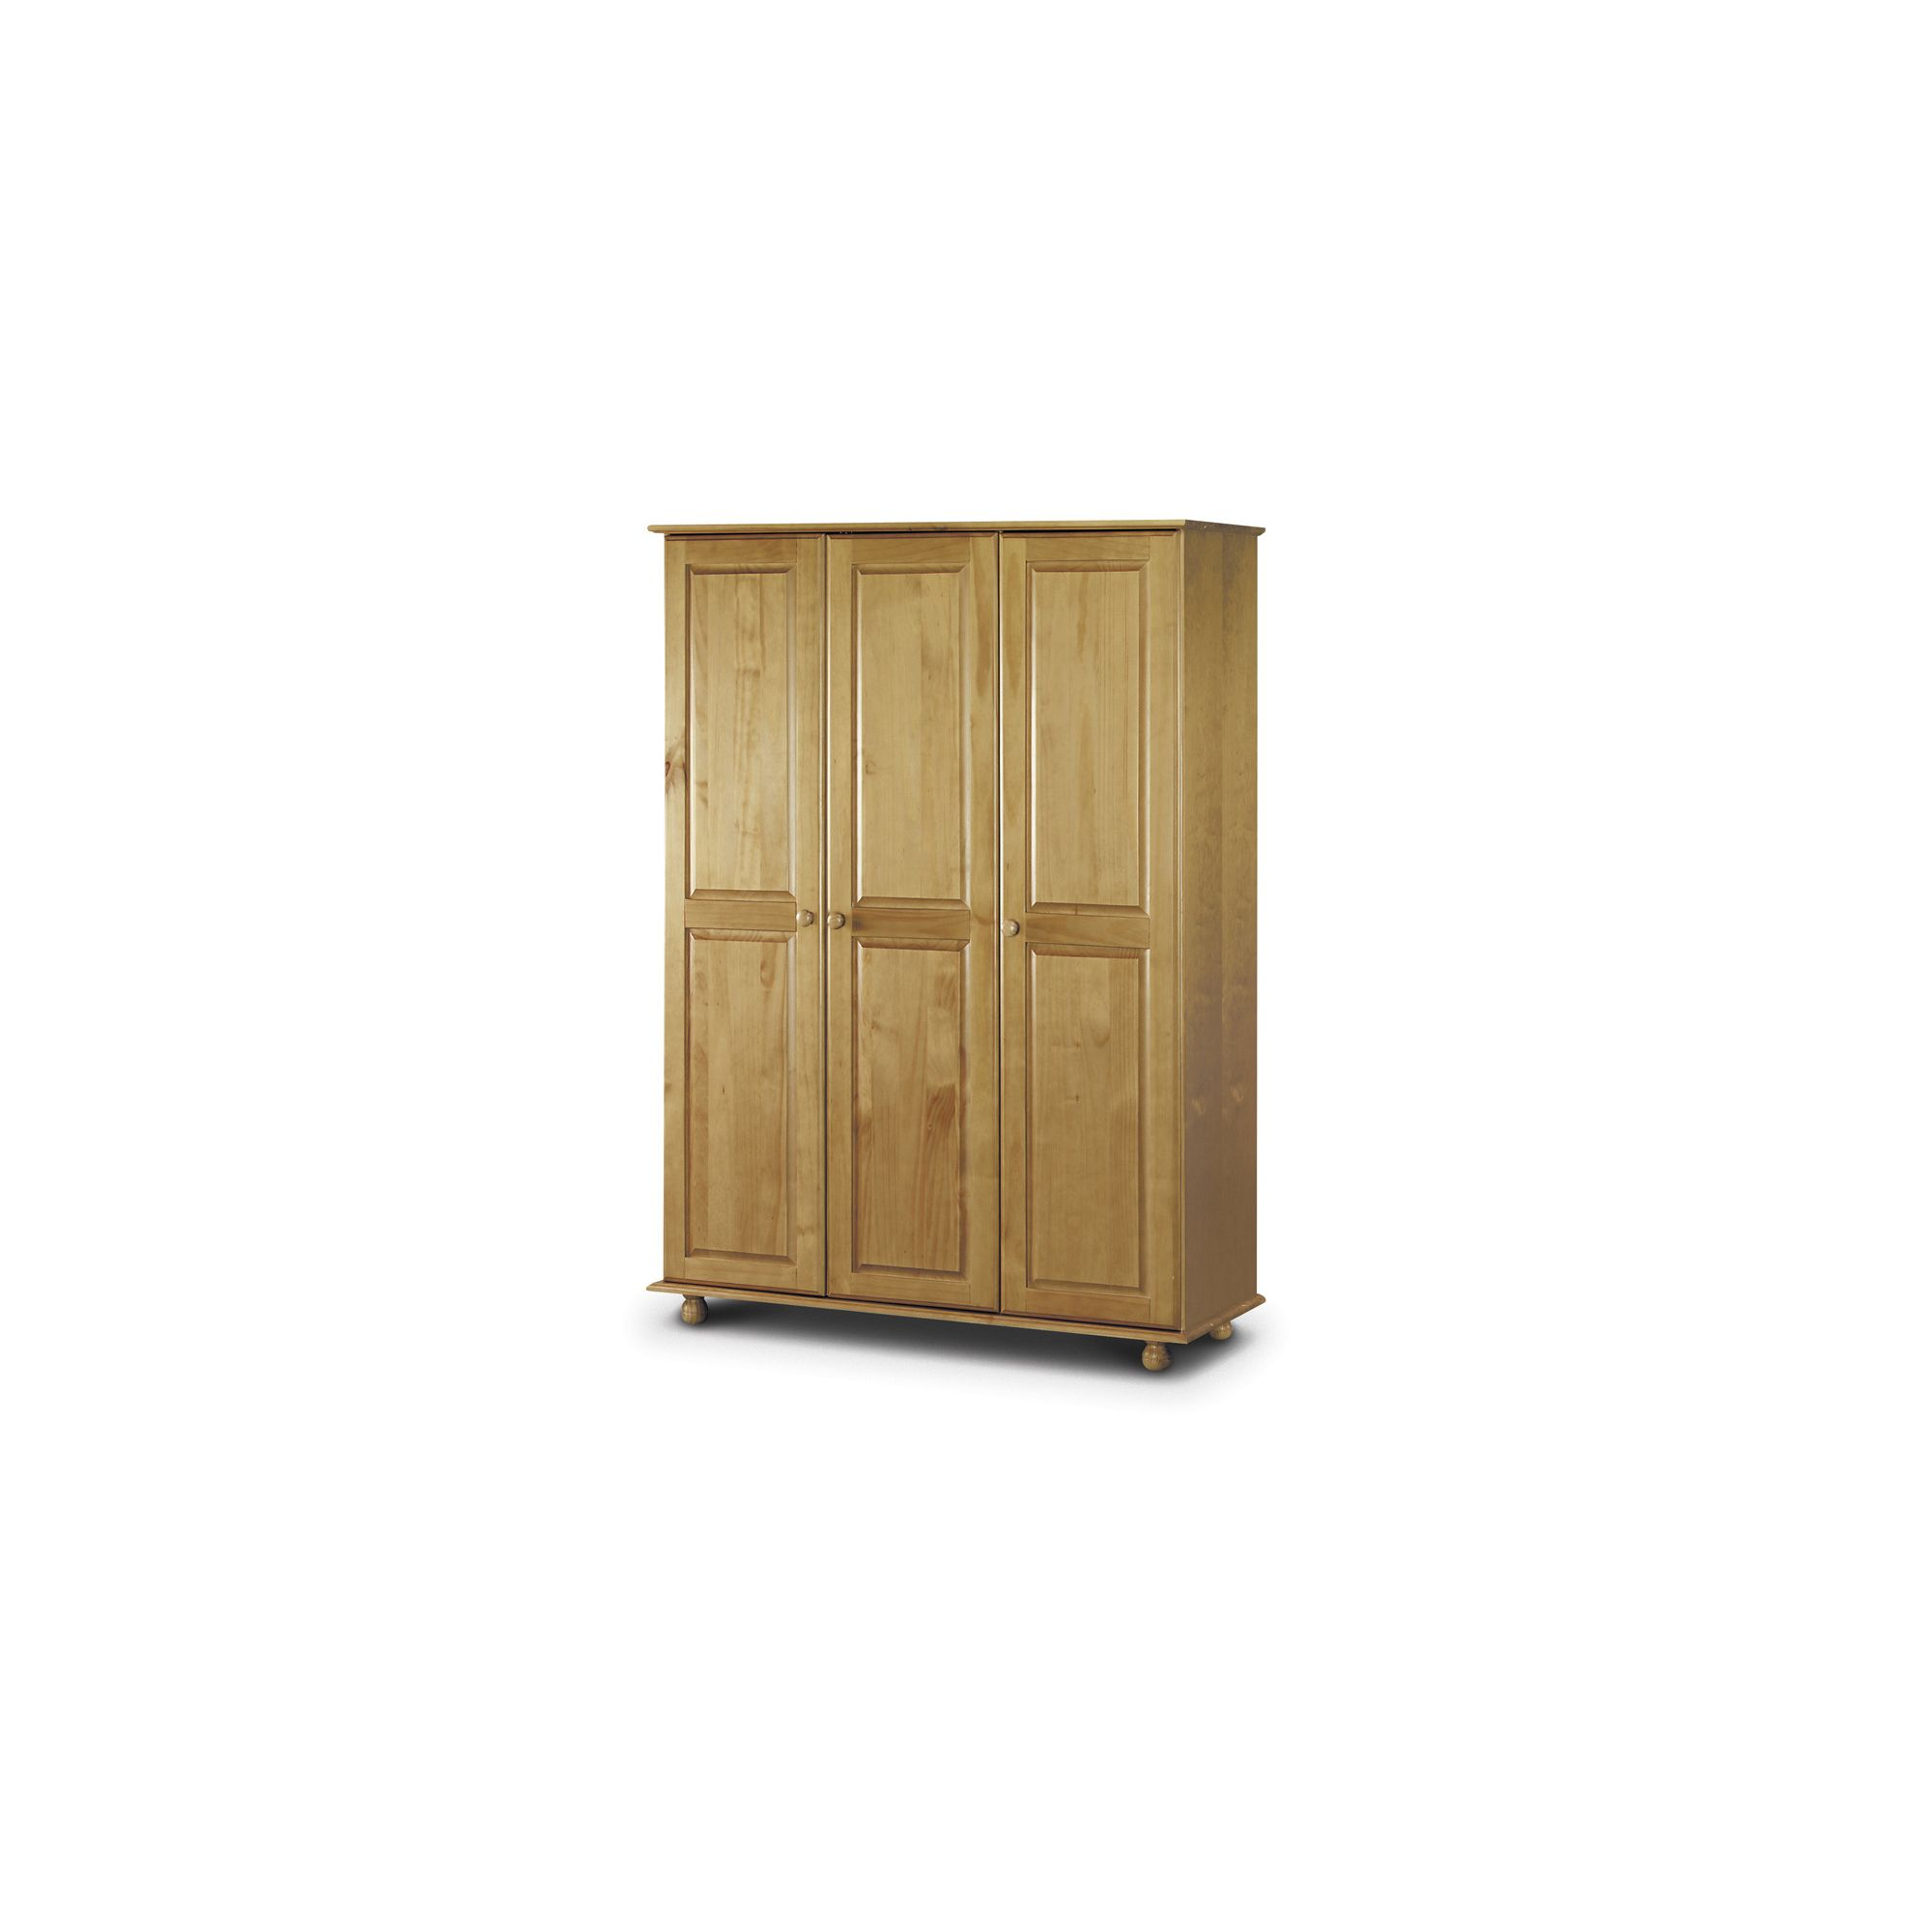 Julian Bowen Pickwick 3 Door Wardrobe with Pine Fitted in Solid Pine at Tesco Direct